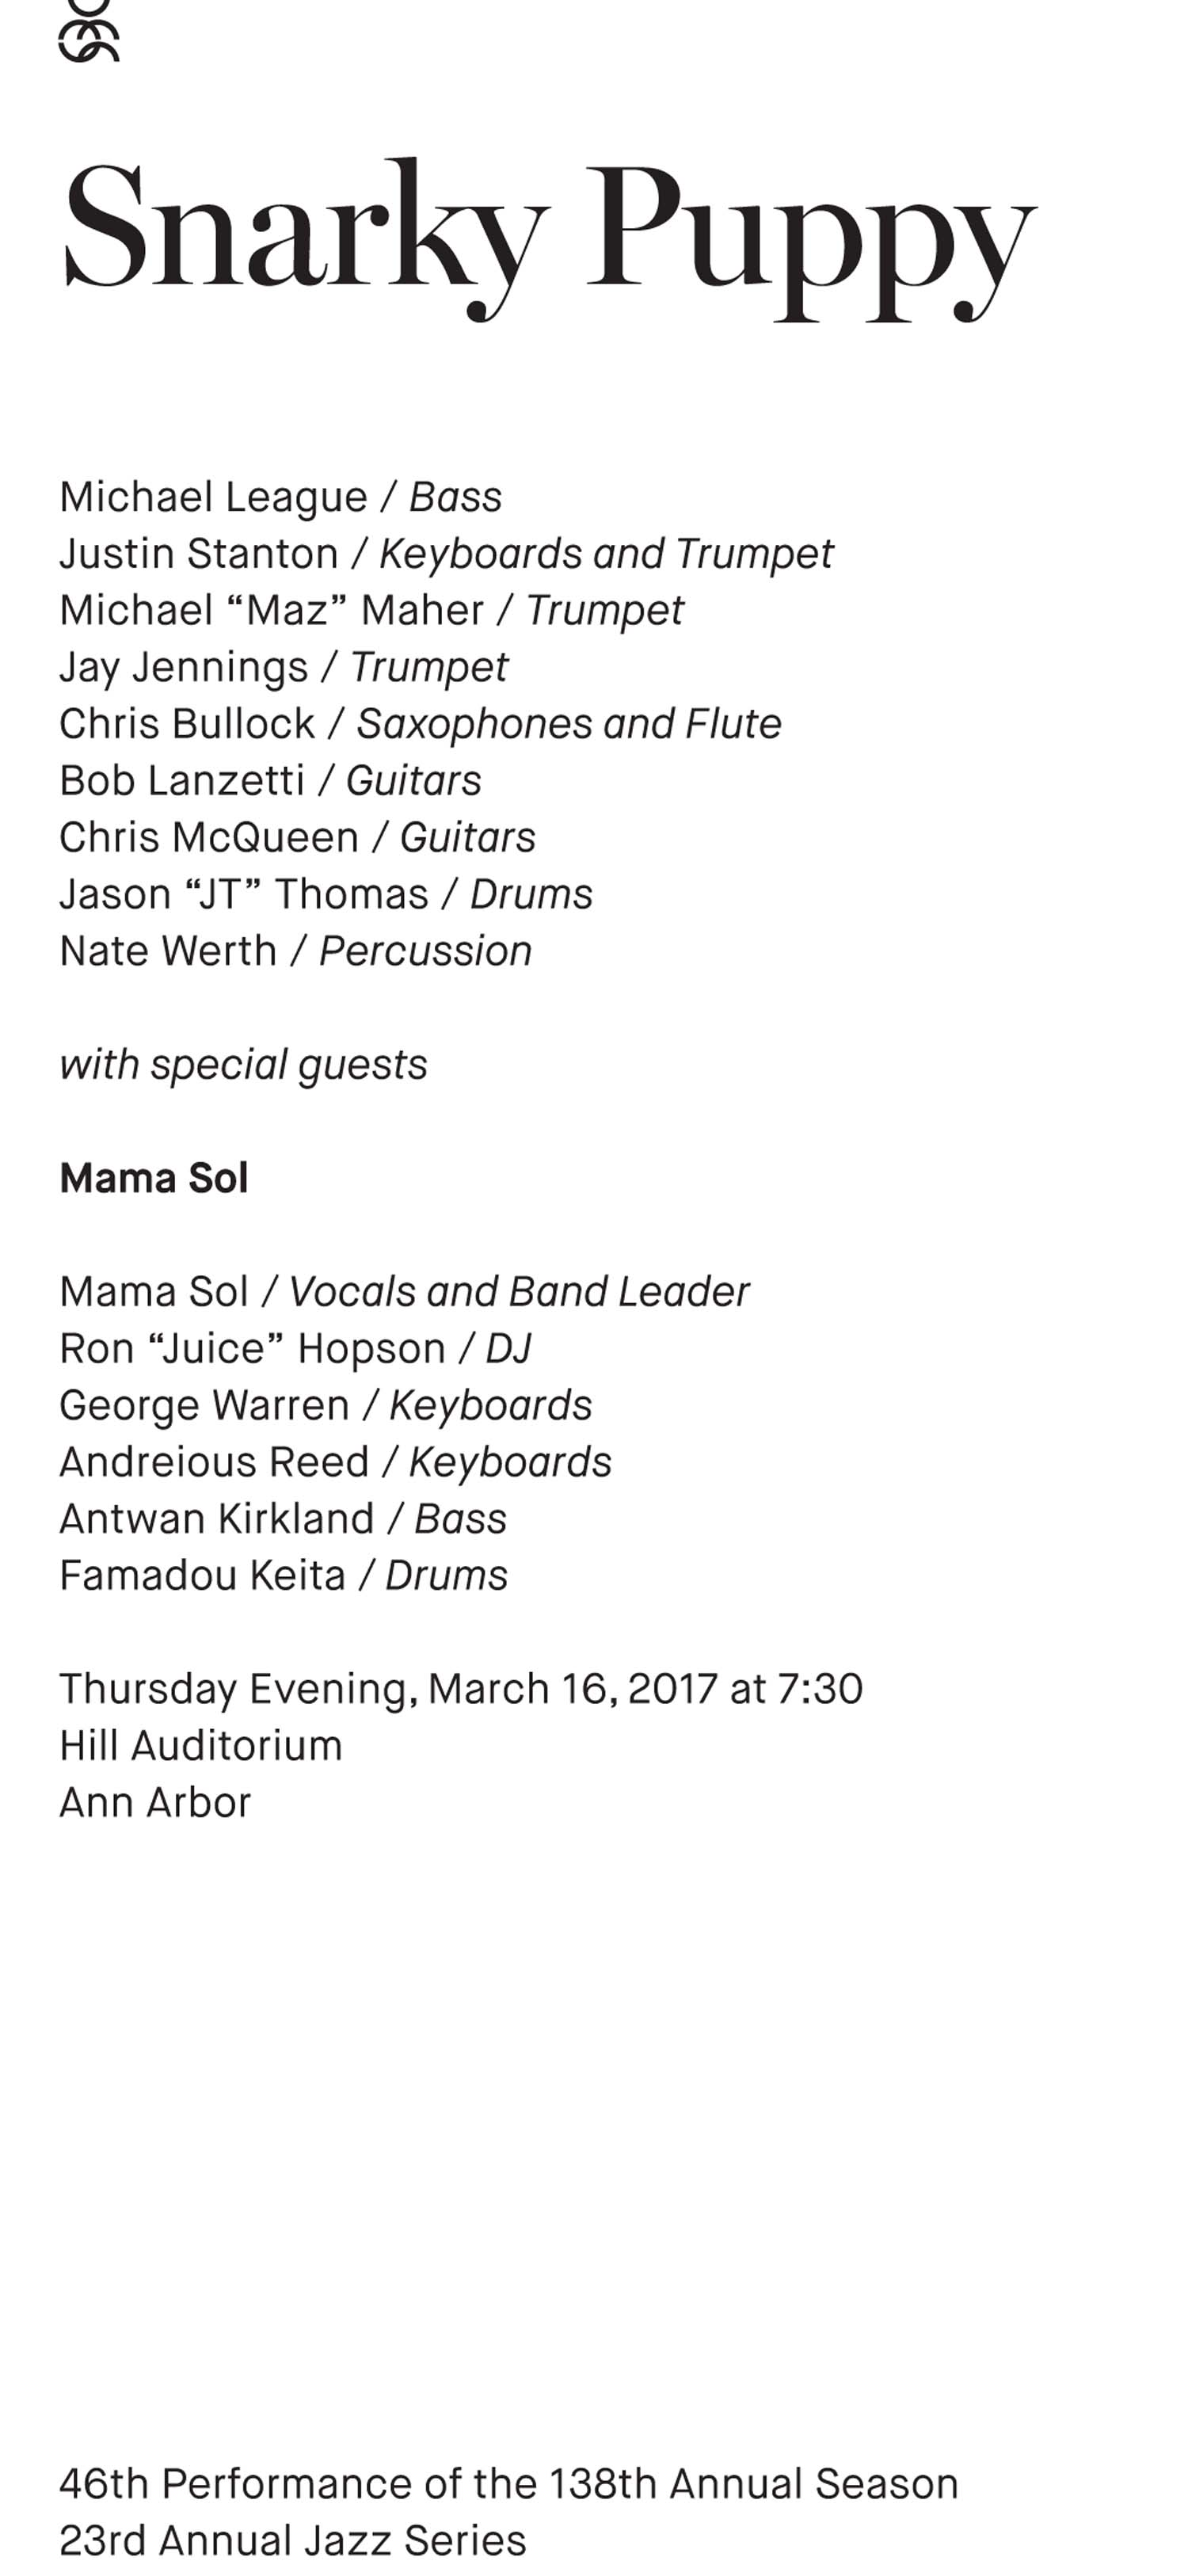 UMS Concert Program, March 16, 2017 - Snarky Puppy image